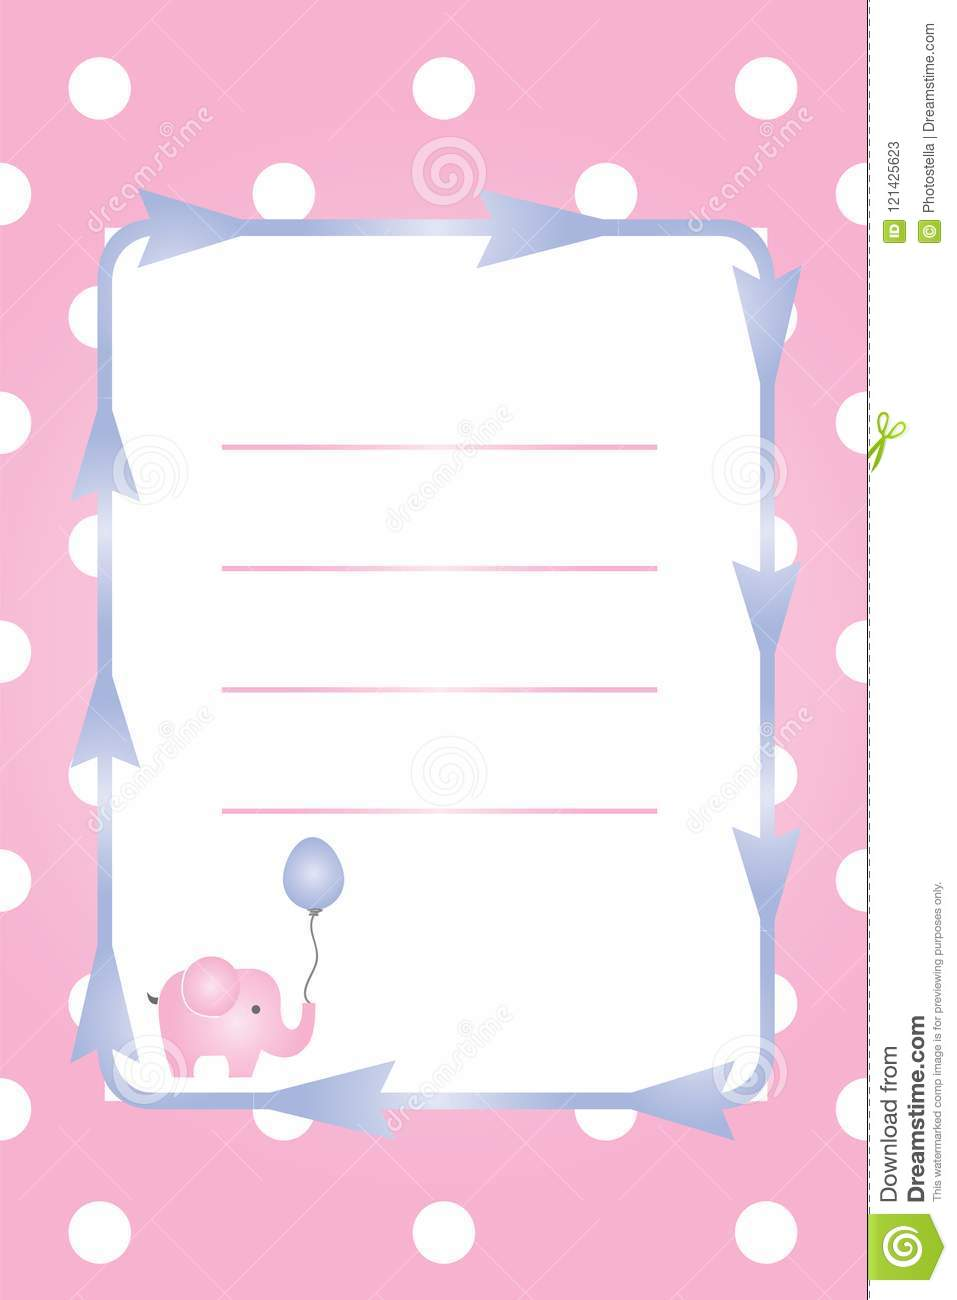 baby girl card baby shower party invitation christening